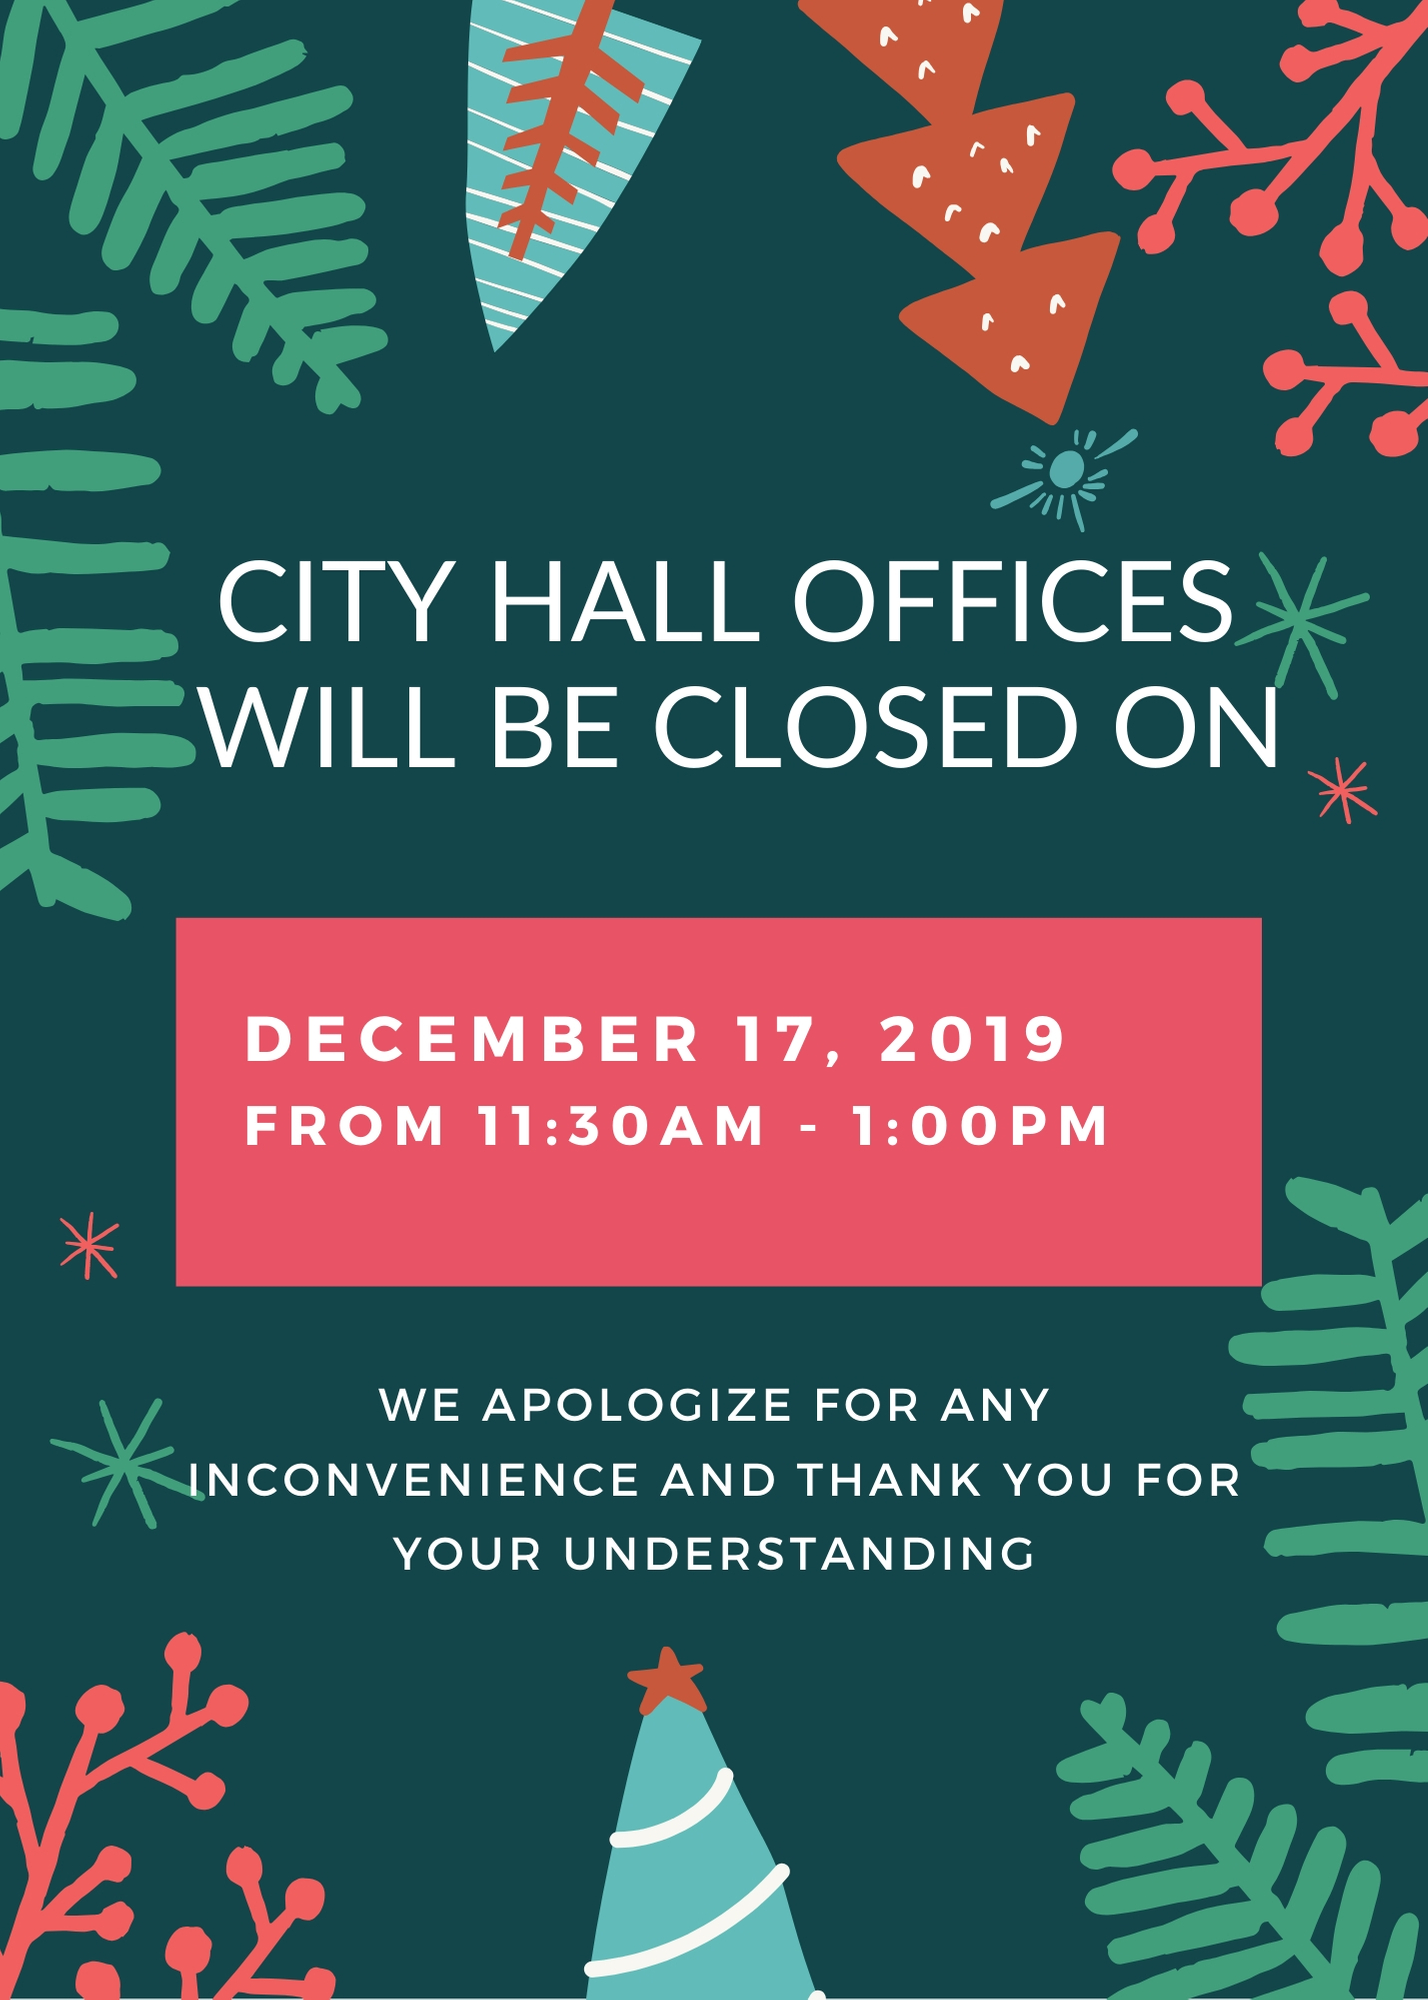 poster says city hall will be closed on Tuesday, Dec. 17, 2019 from 11:30am to 1pm